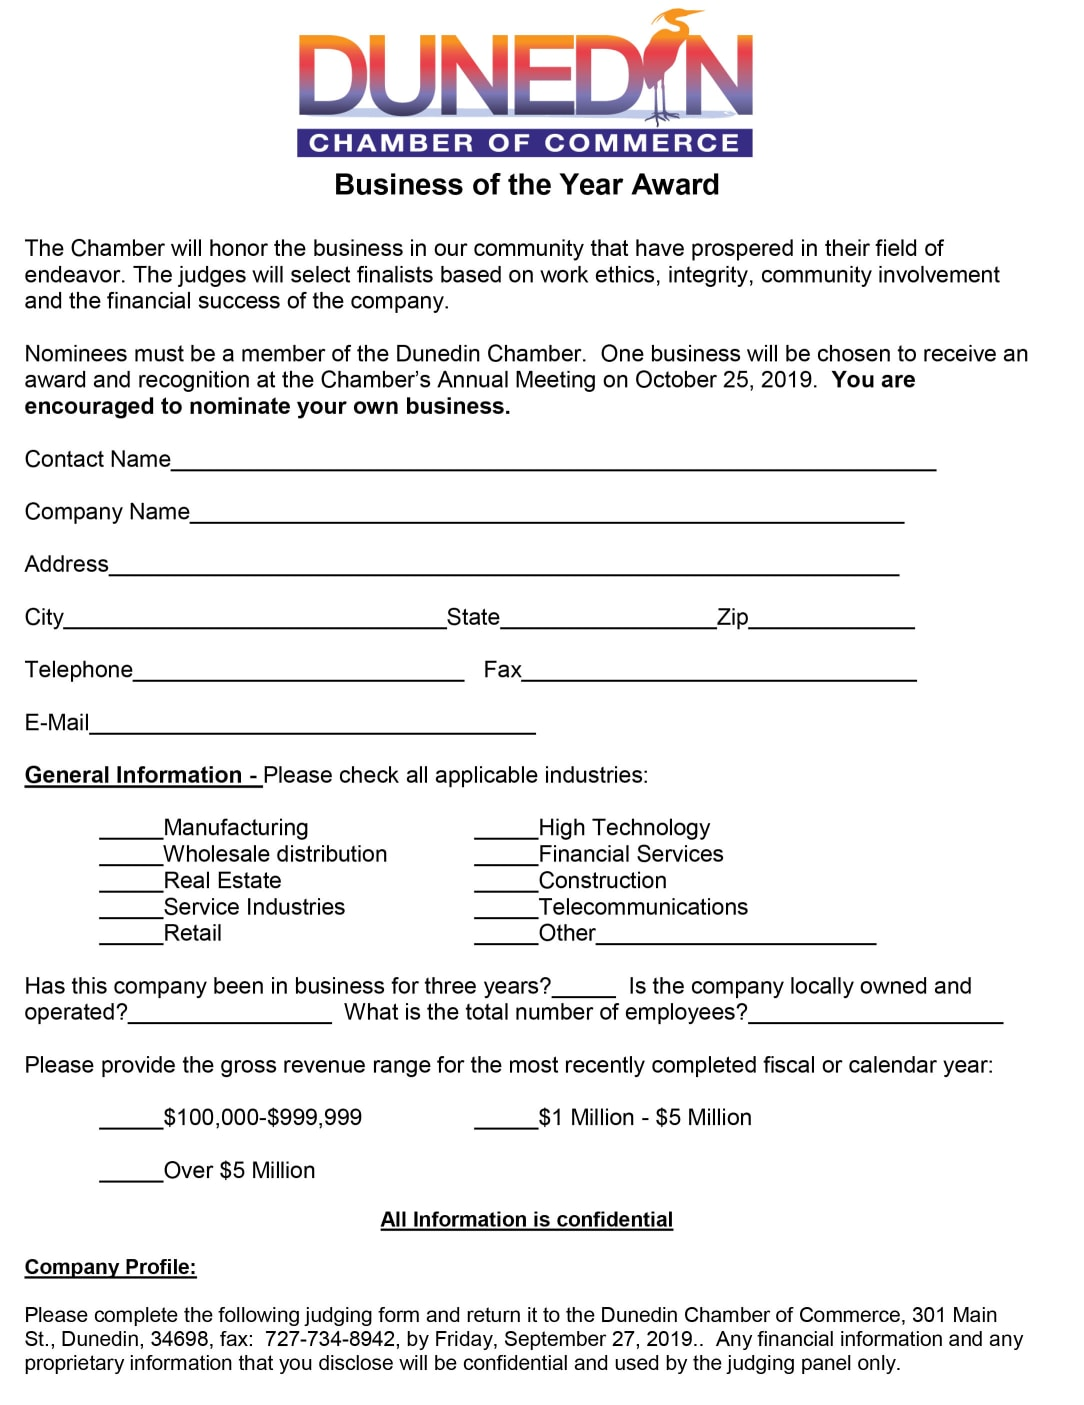 Business-Nomination-form-1-w1084.jpg